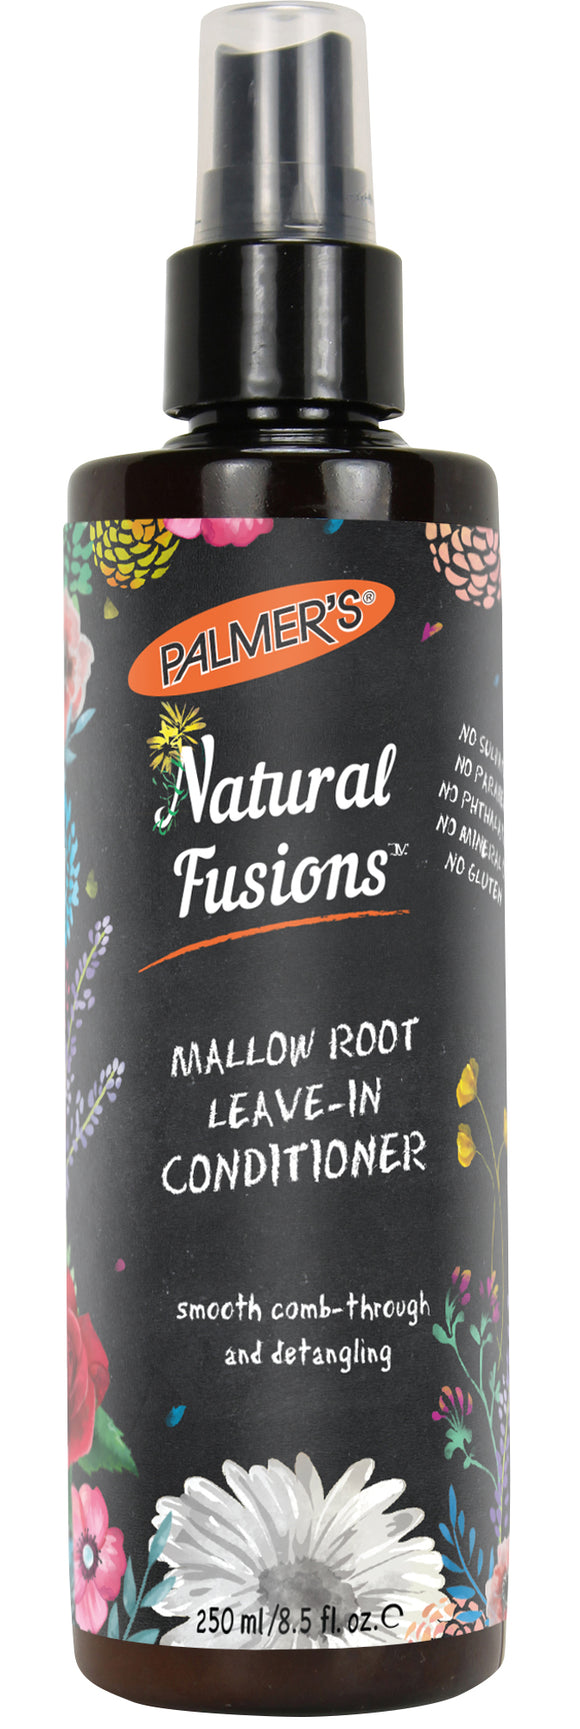 Palmer's Natural Fusions Mallow Root Leave-In Conditioner/ 8.5 fl. oz.